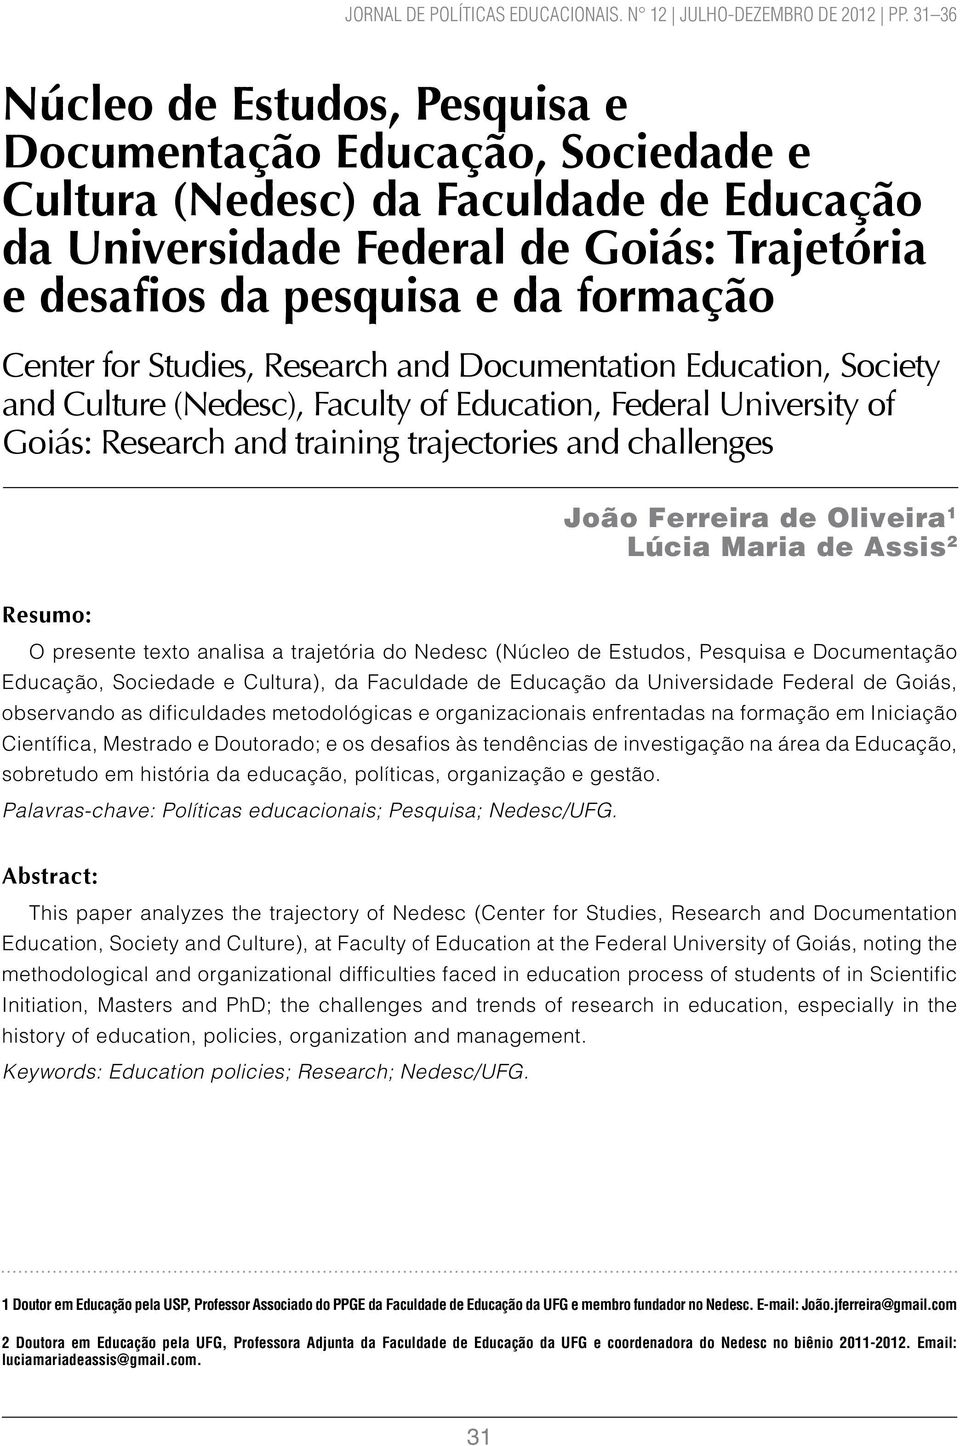 Center for Studies, Research and Documentation Education, Society and Culture (Nedesc), Faculty of Education, Federal University of Goiás: Research and training trajectories and challenges João